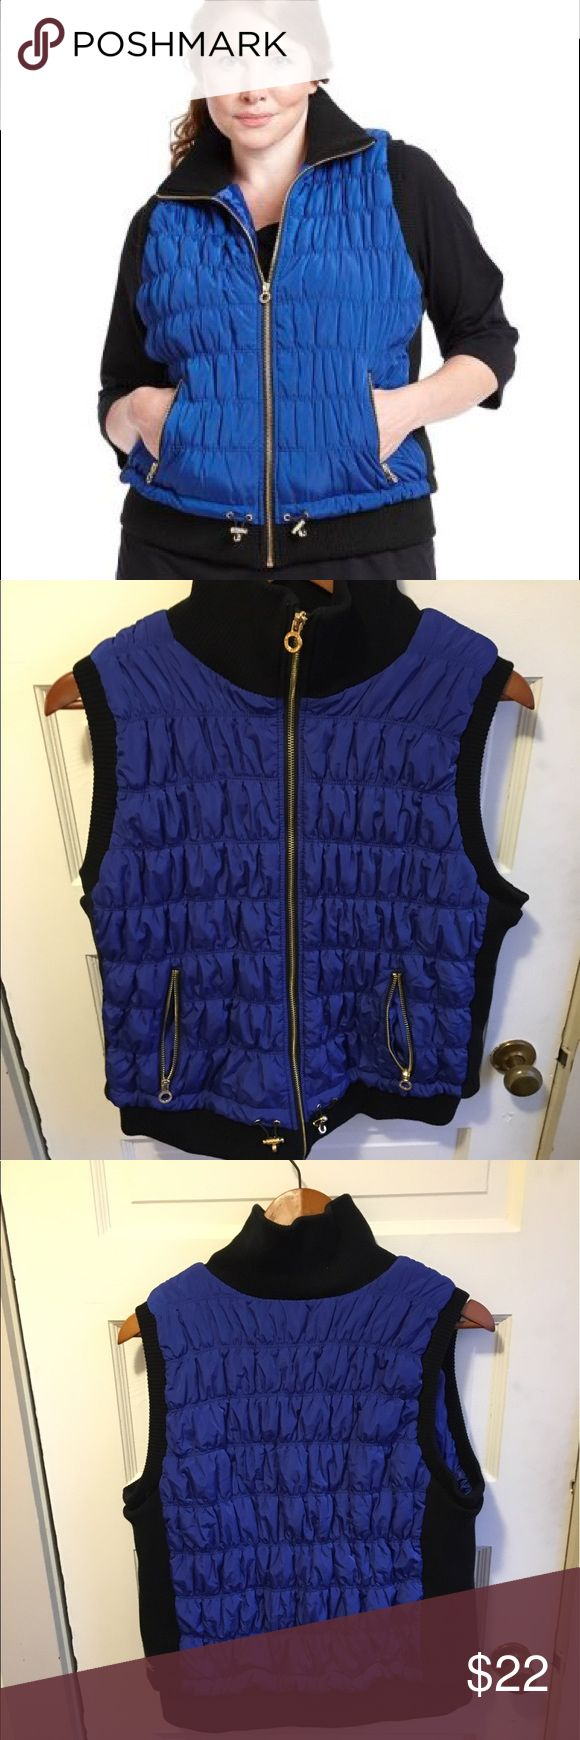 Calvin Klein blue vest with smartphone pocket This vest is very stretchy and comfortable. Dense and well made. Great condition Calvin Klein Jackets & Coats Vests